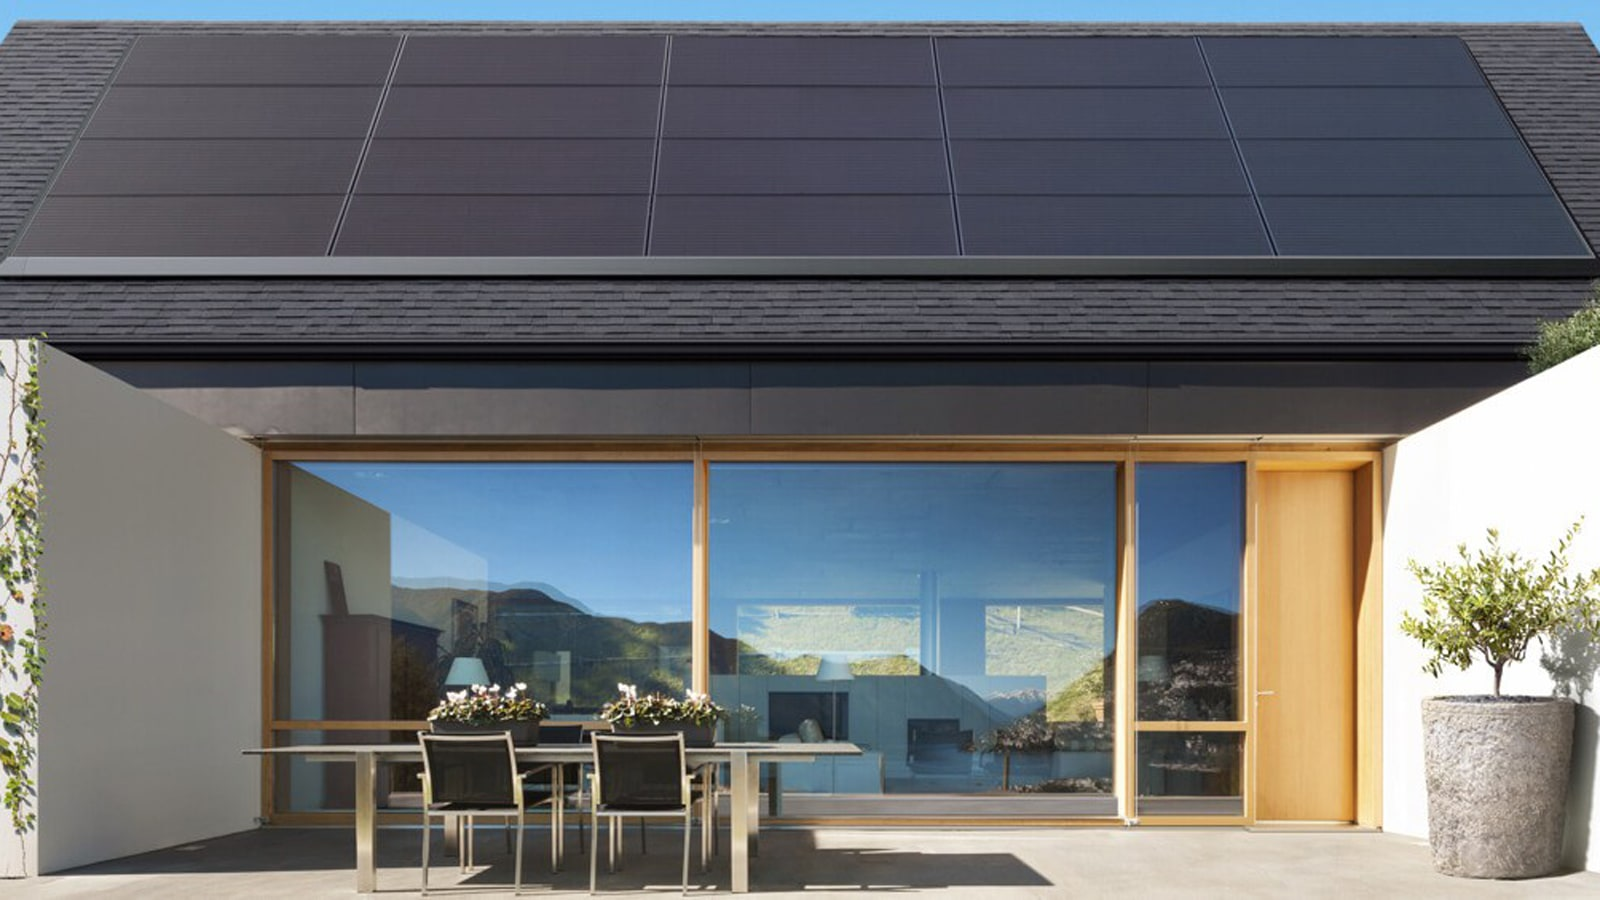 Tesla S Sleek Solar Panels Are Easier To Install On Your Roof